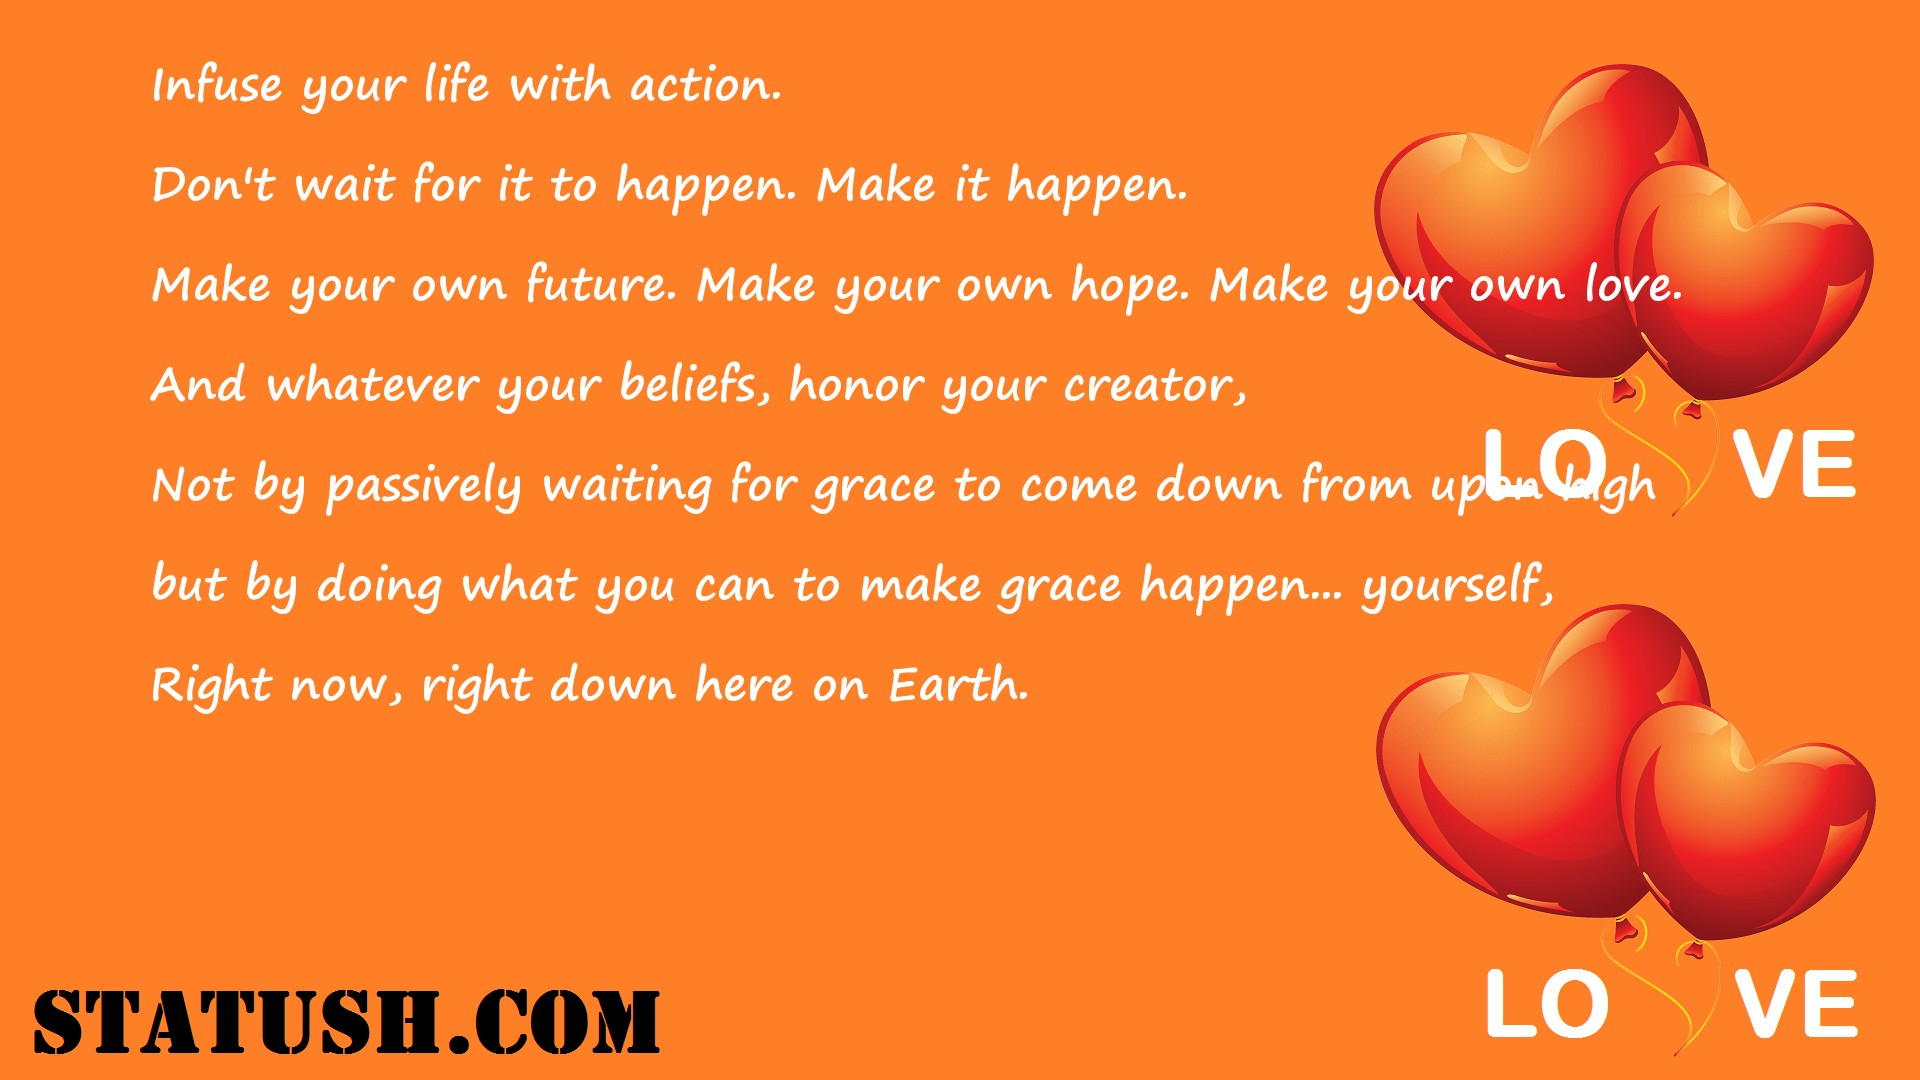 Infuse your life with action.